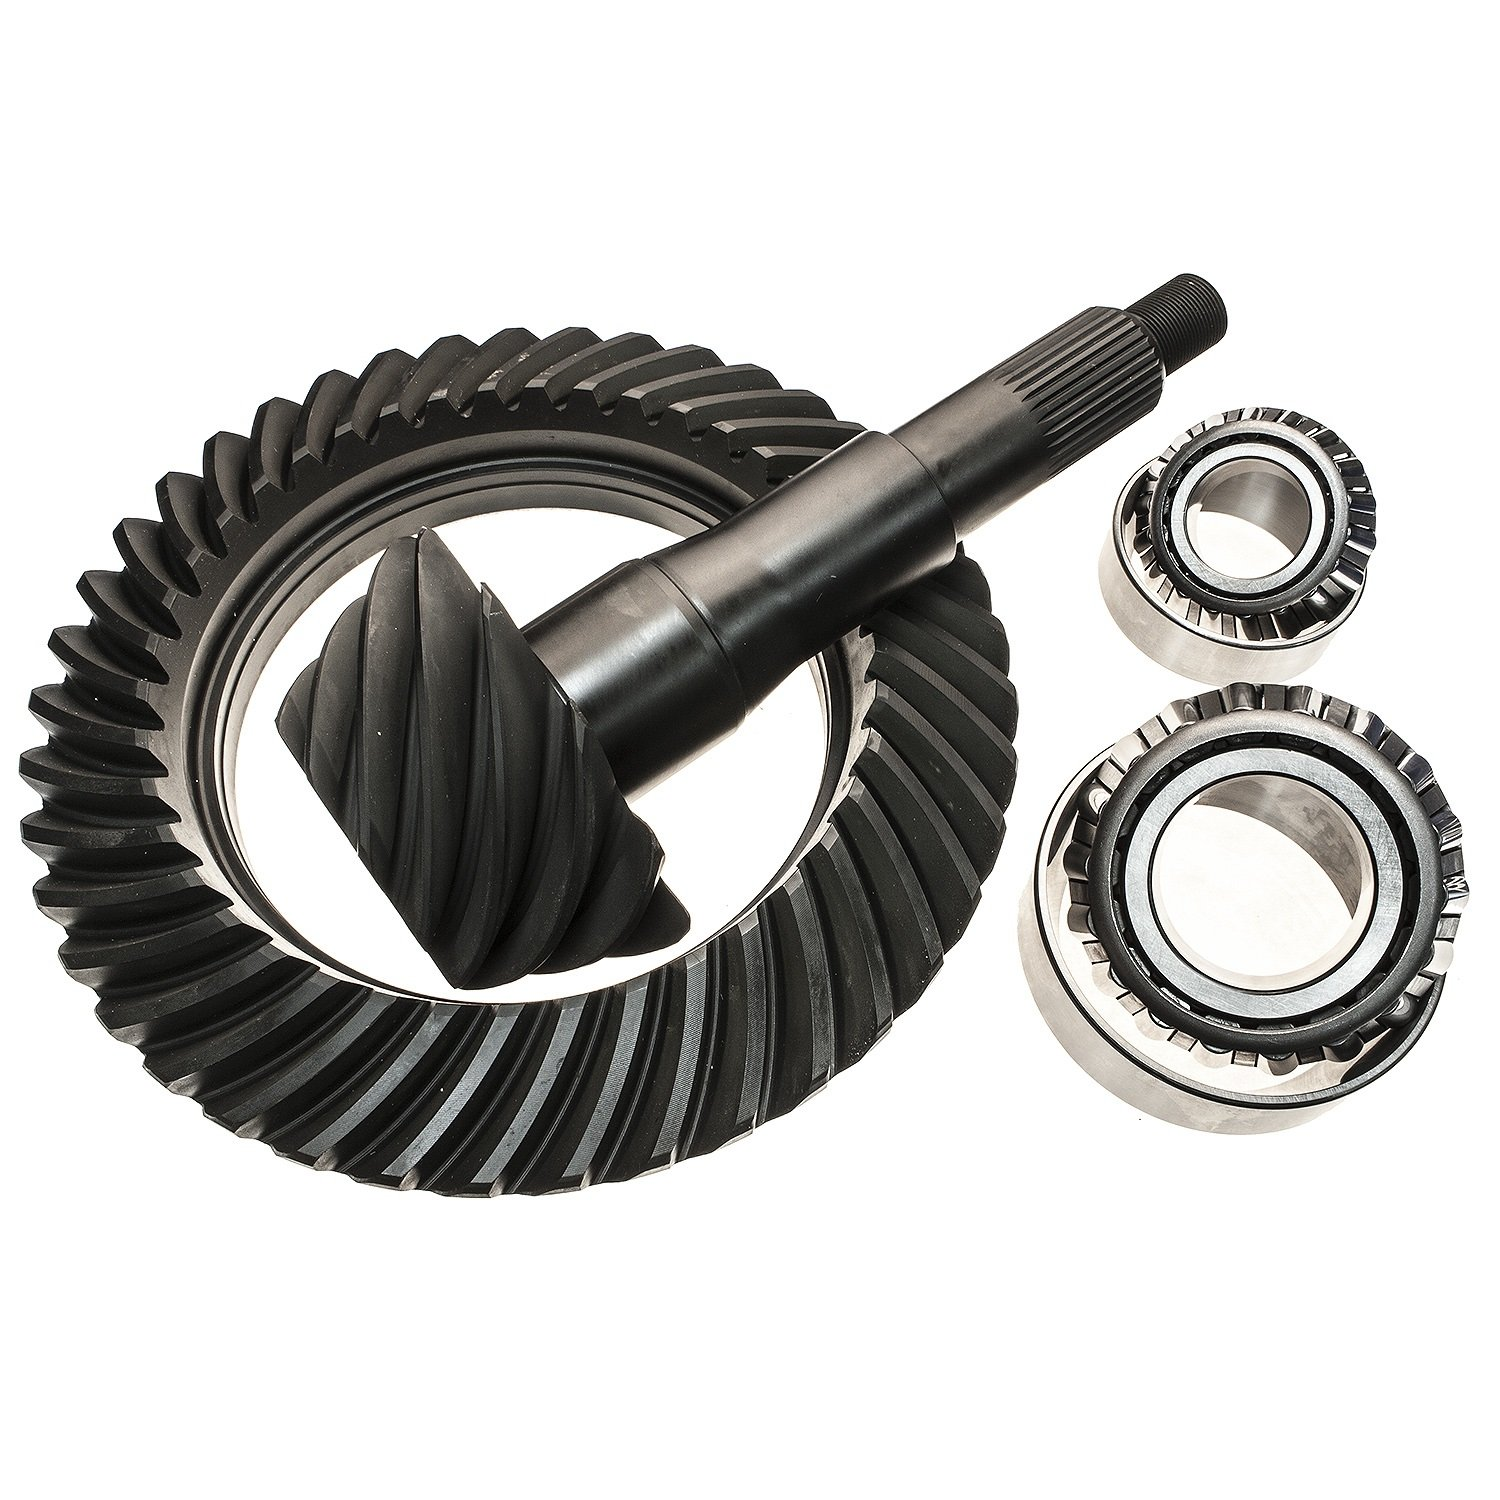 F10.5-513PK Motive Gear Ring and Pinion Gear Set Motive Gear Performance Differential